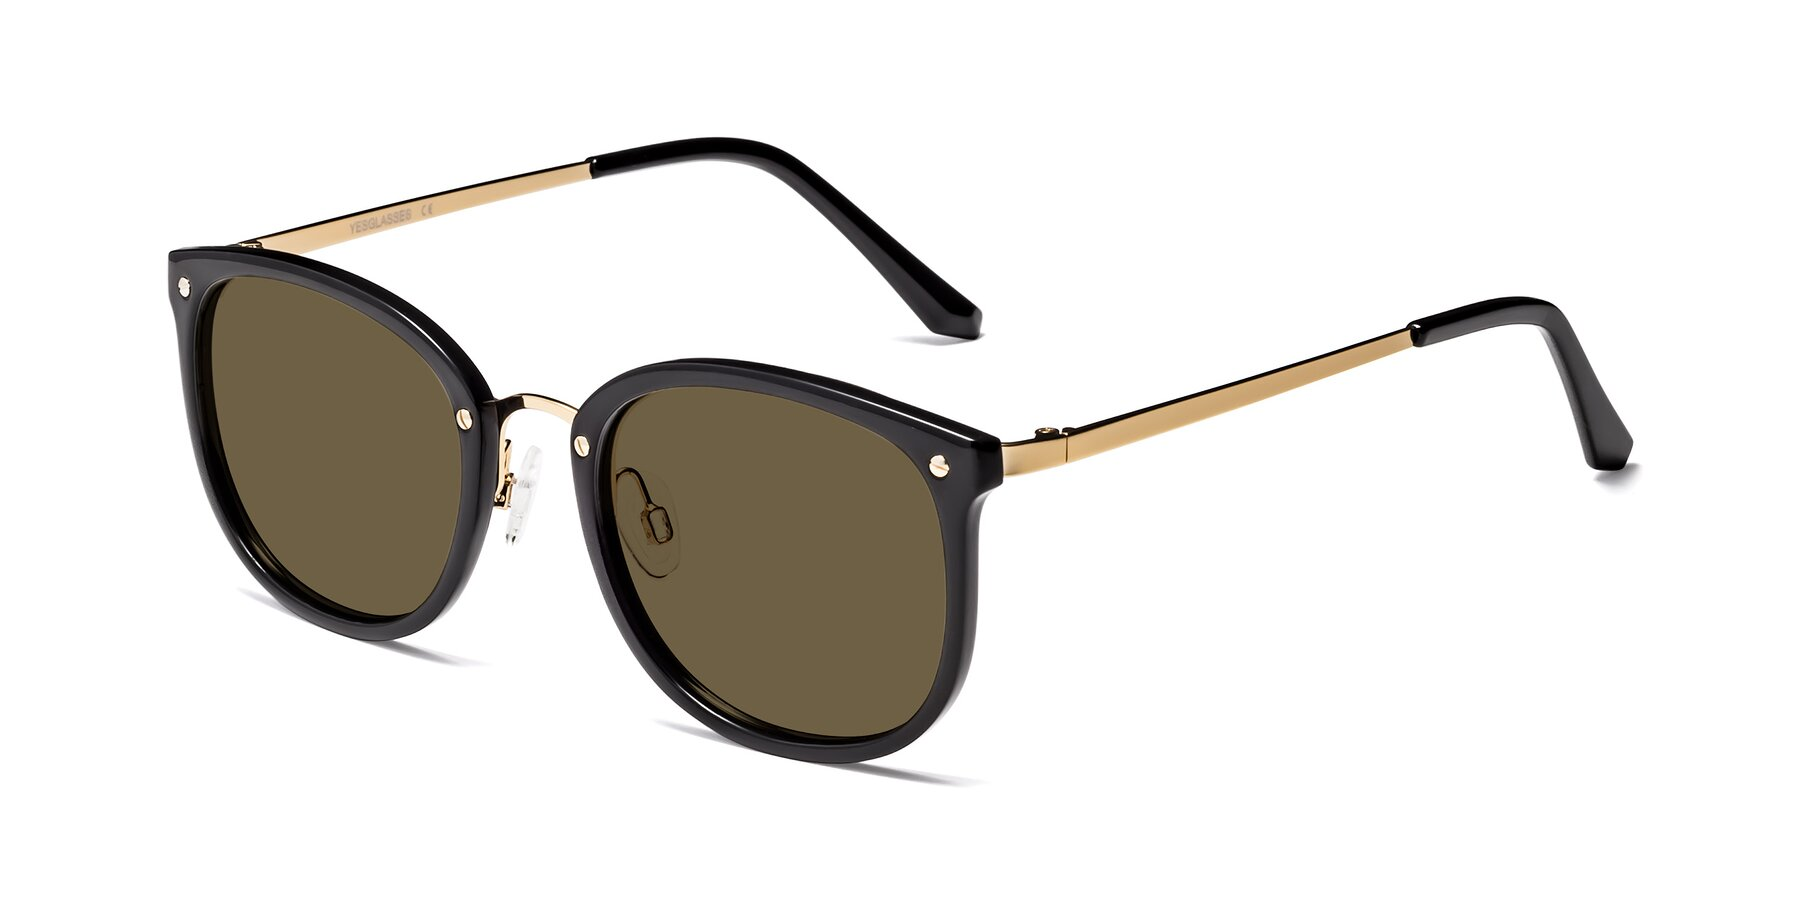 Angle of Timeless in Black-Gold with Brown Polarized Lenses